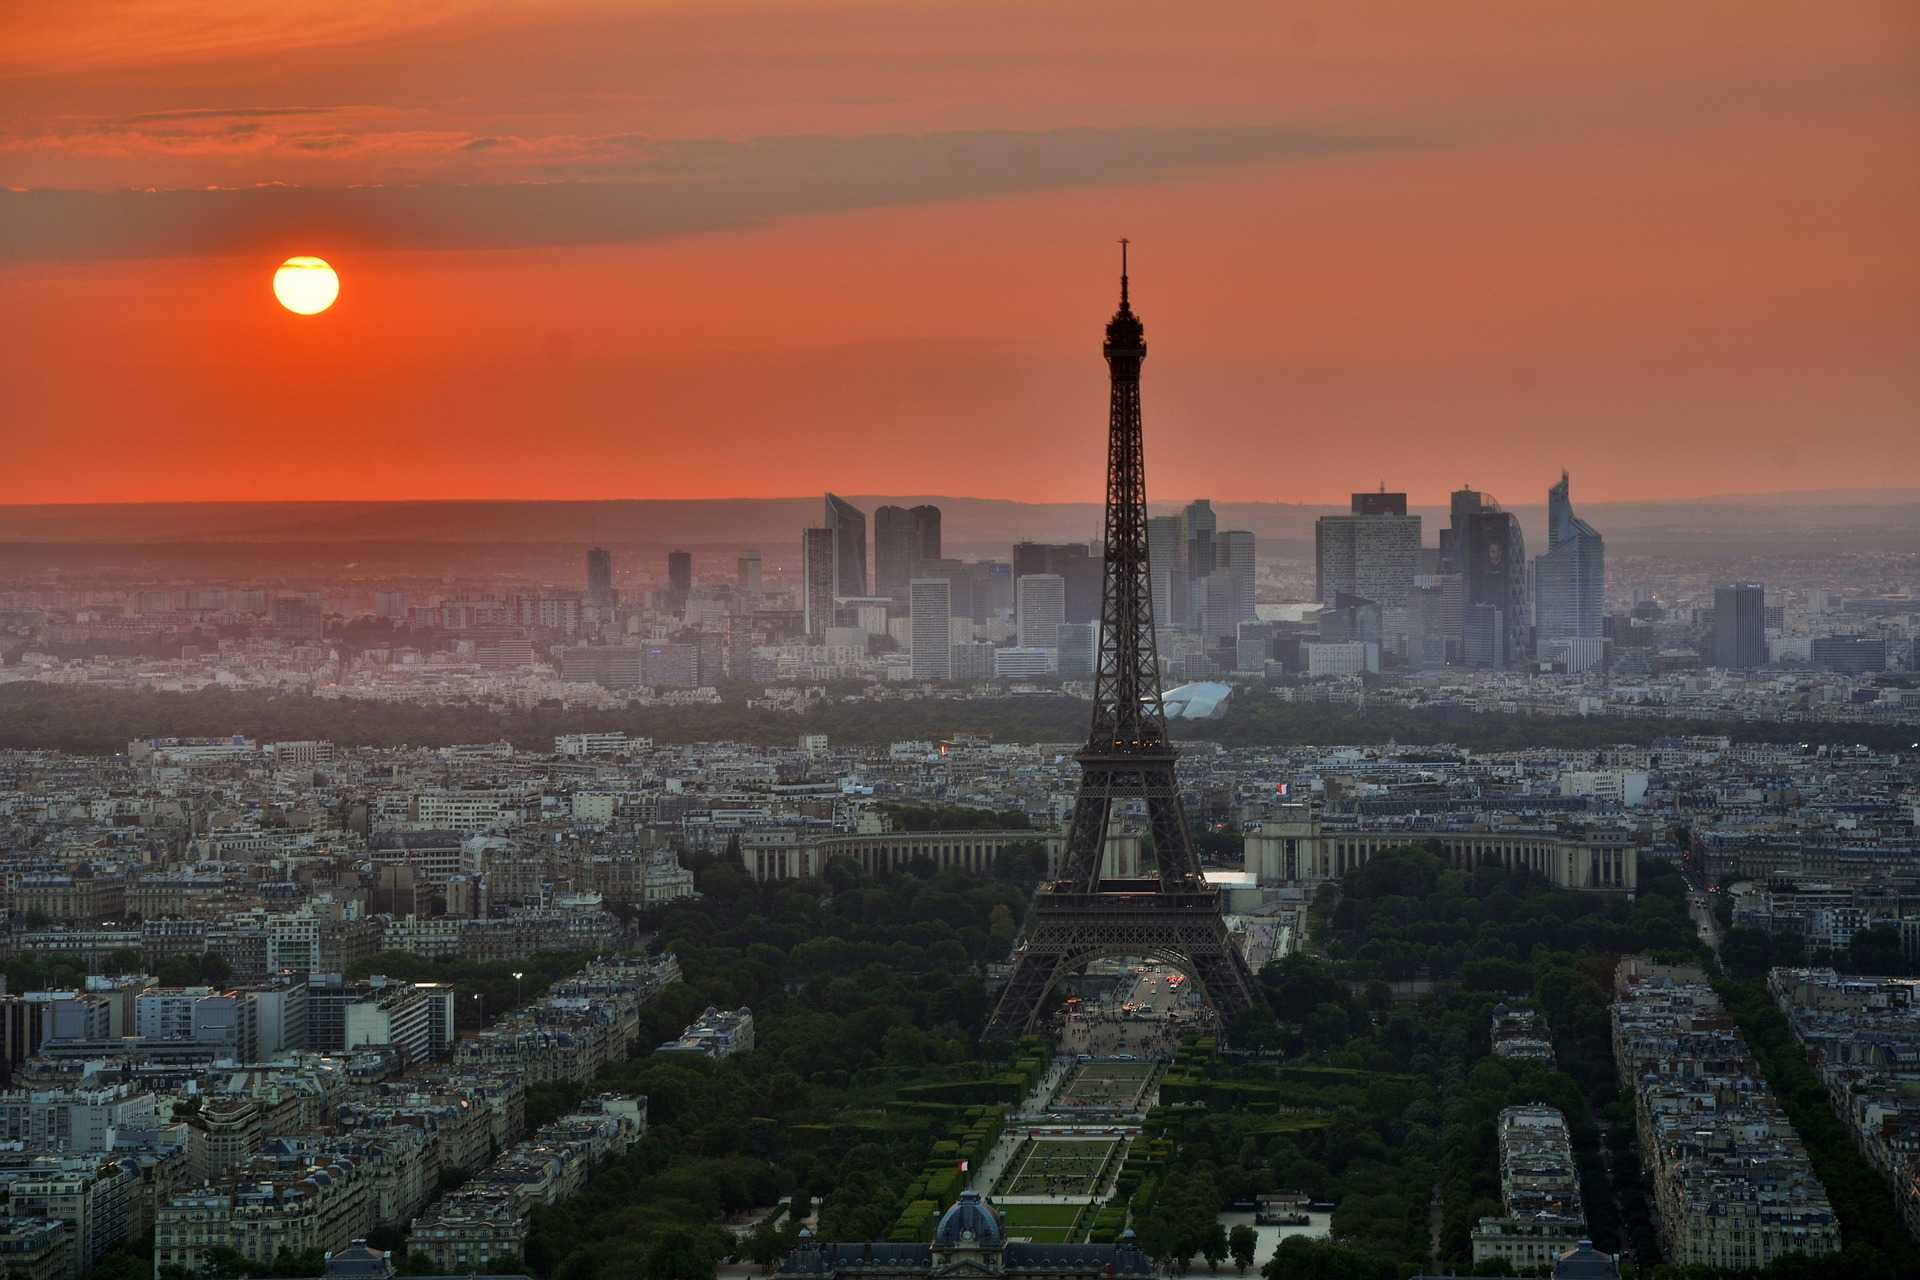 Paris, France's capital and most populous city